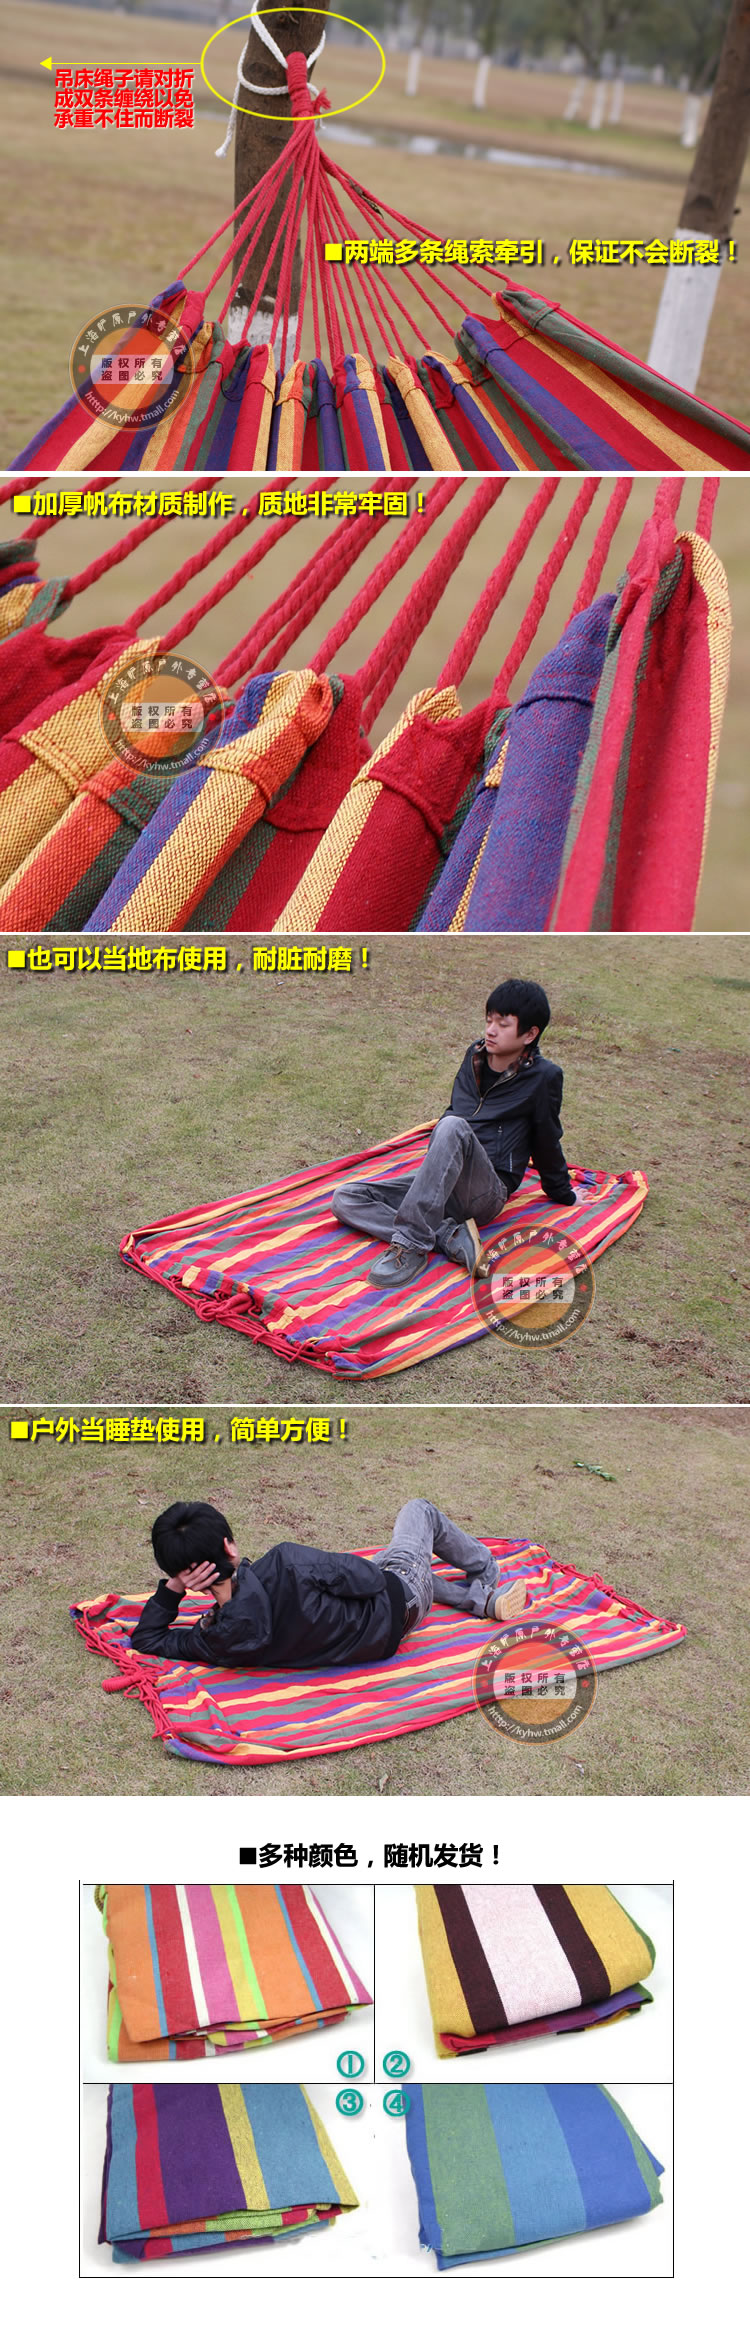 Sheng yuan Double hammocks hammocks outdoor canvas hammock gift tied rope 2